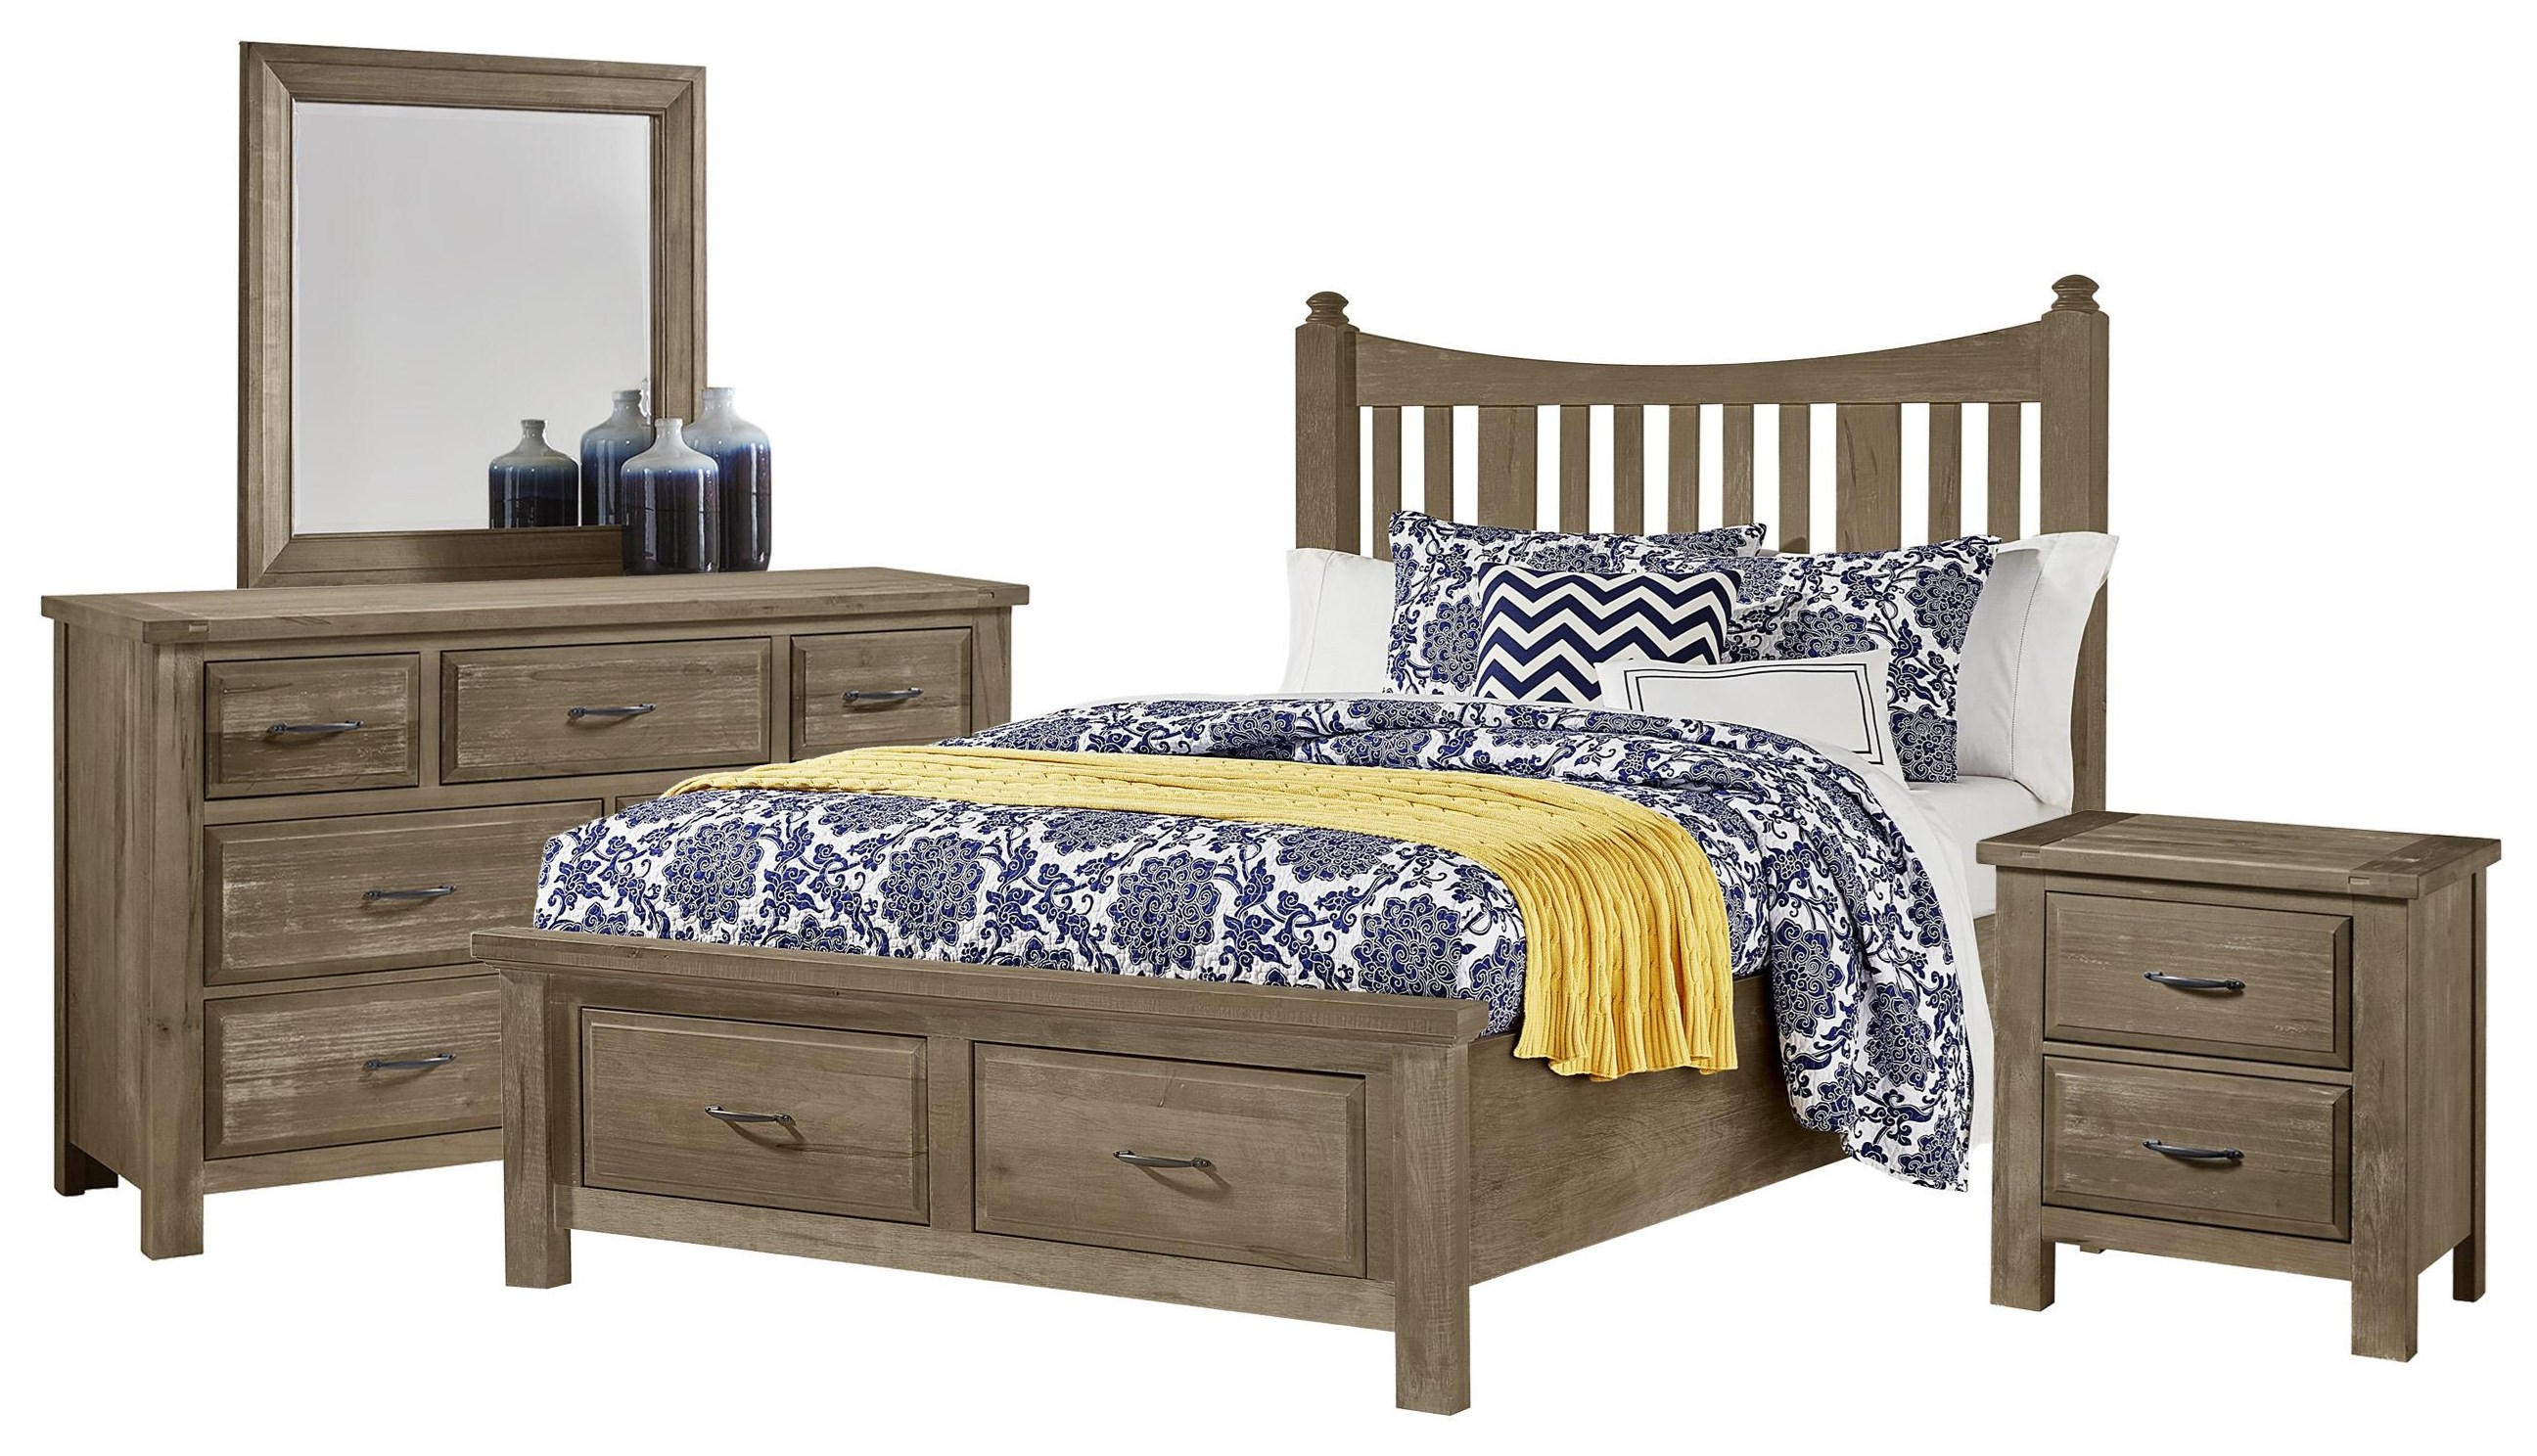 Maple Road Queen Bed, Dresser, Mirror, Nightstand by Artisan & Post at Johnny Janosik